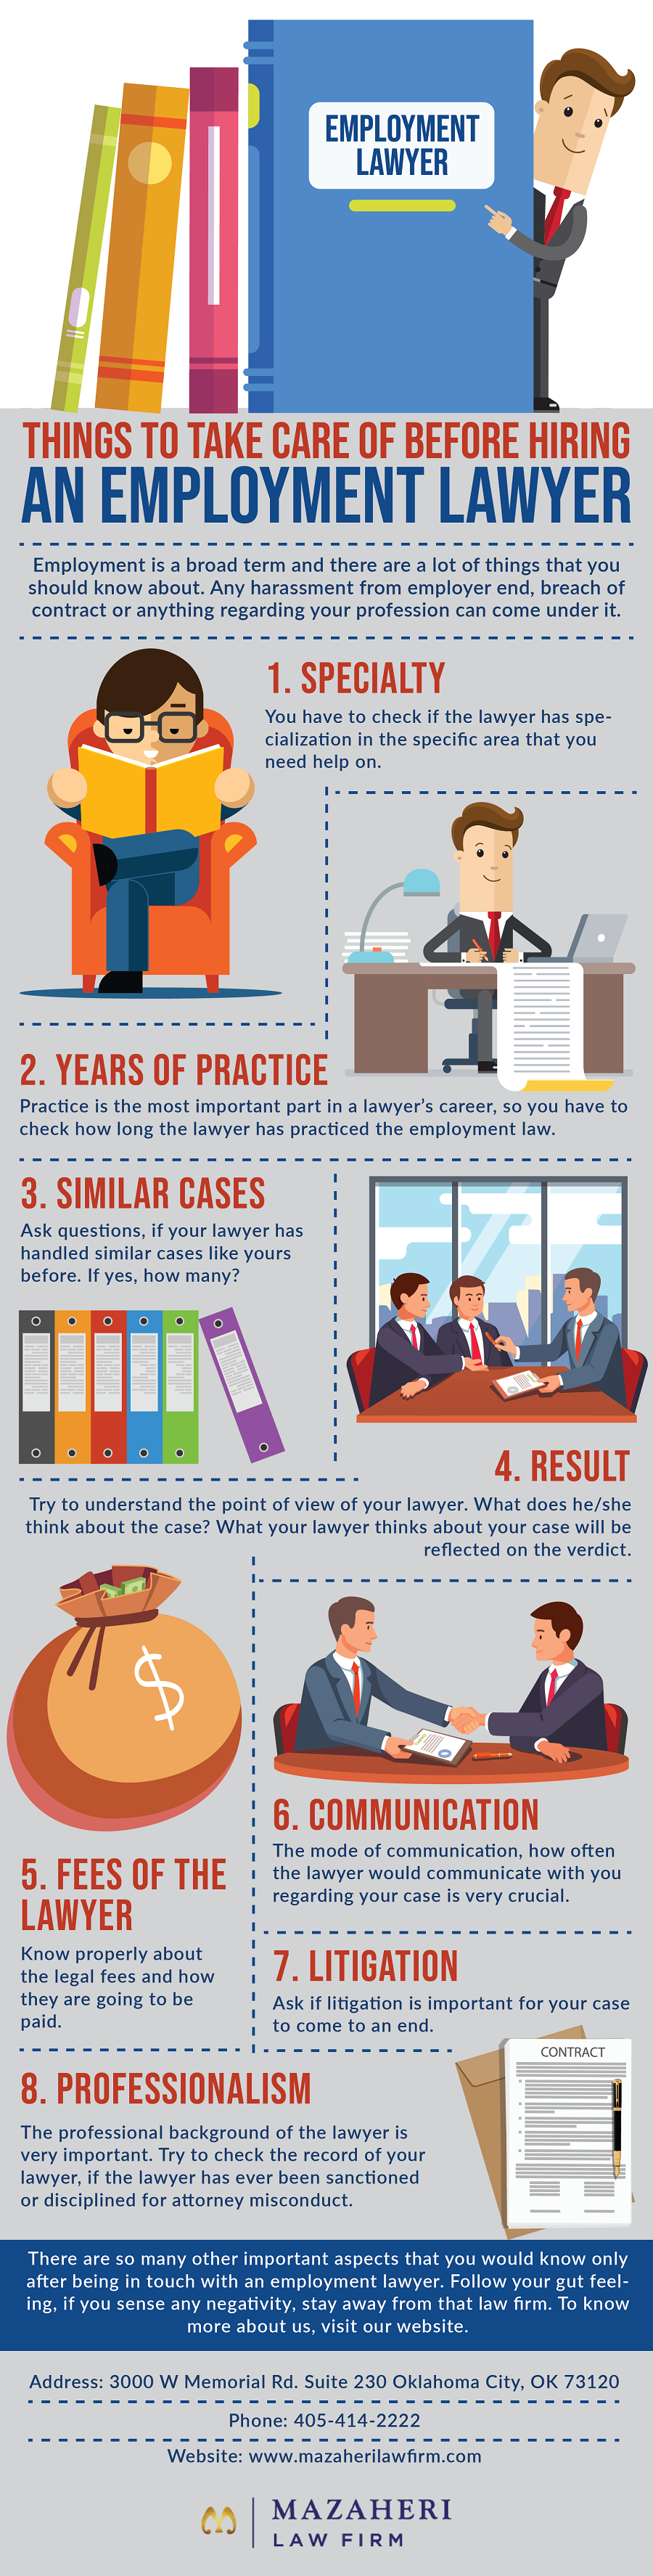 Things to take care of before hiring an employment lawyer.png